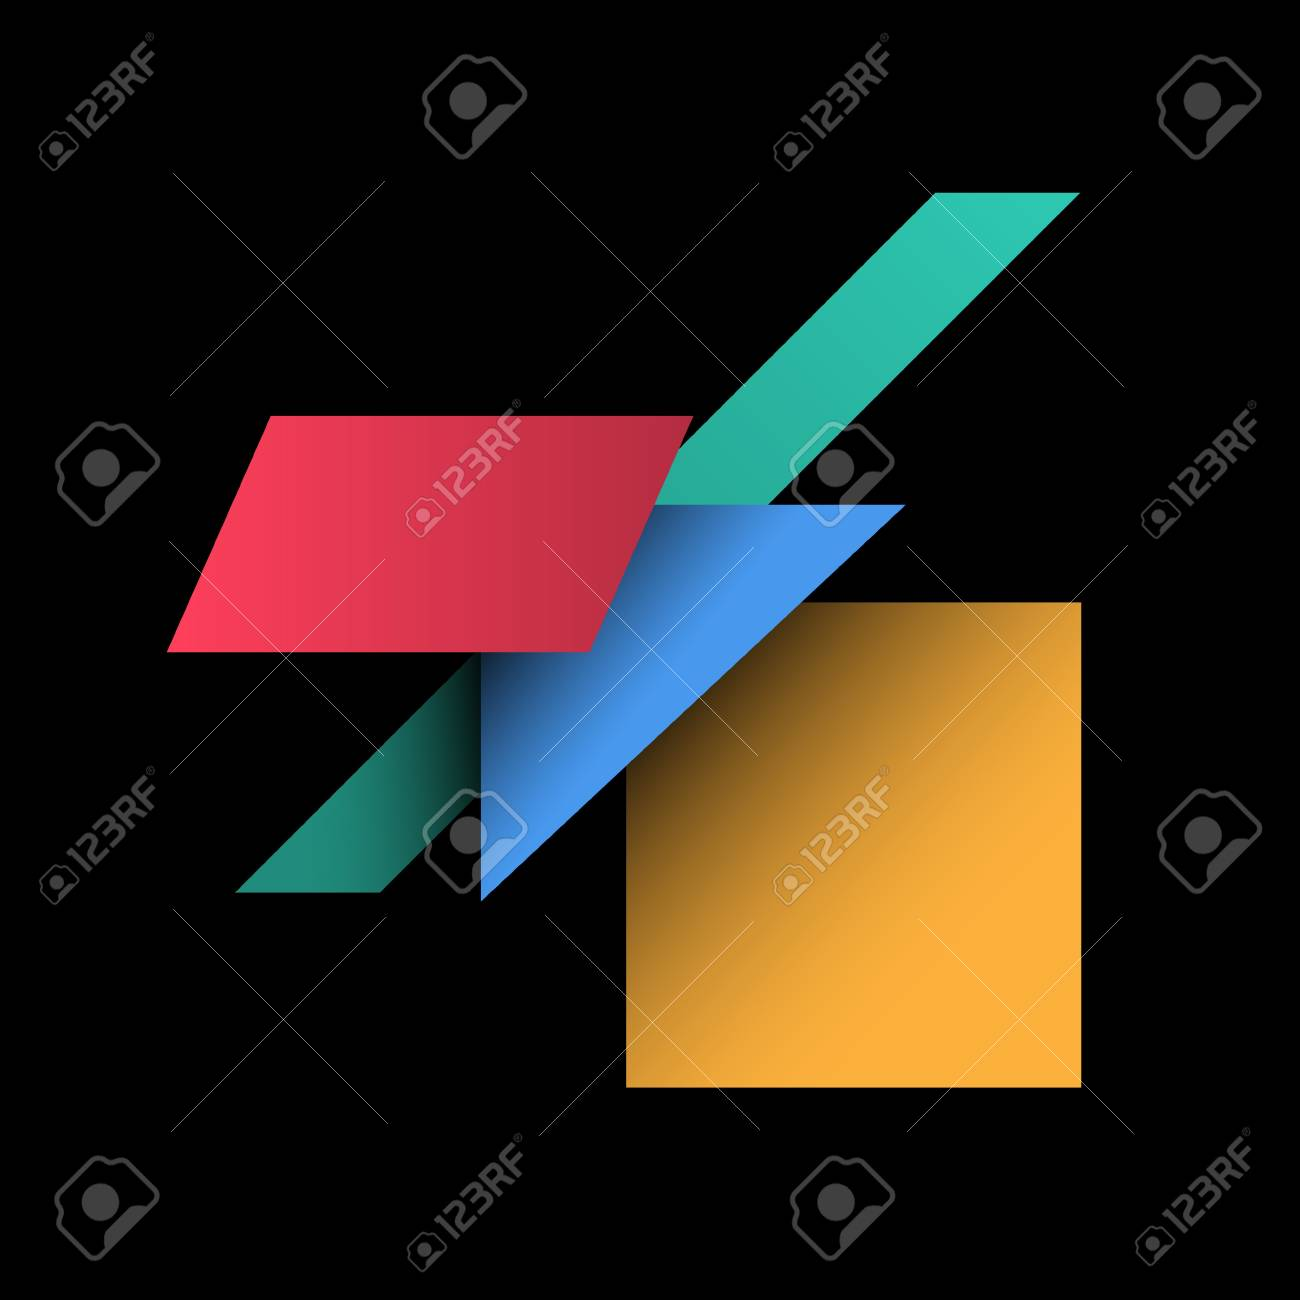 Stylish abstract background for design Stock Vector - 15491768